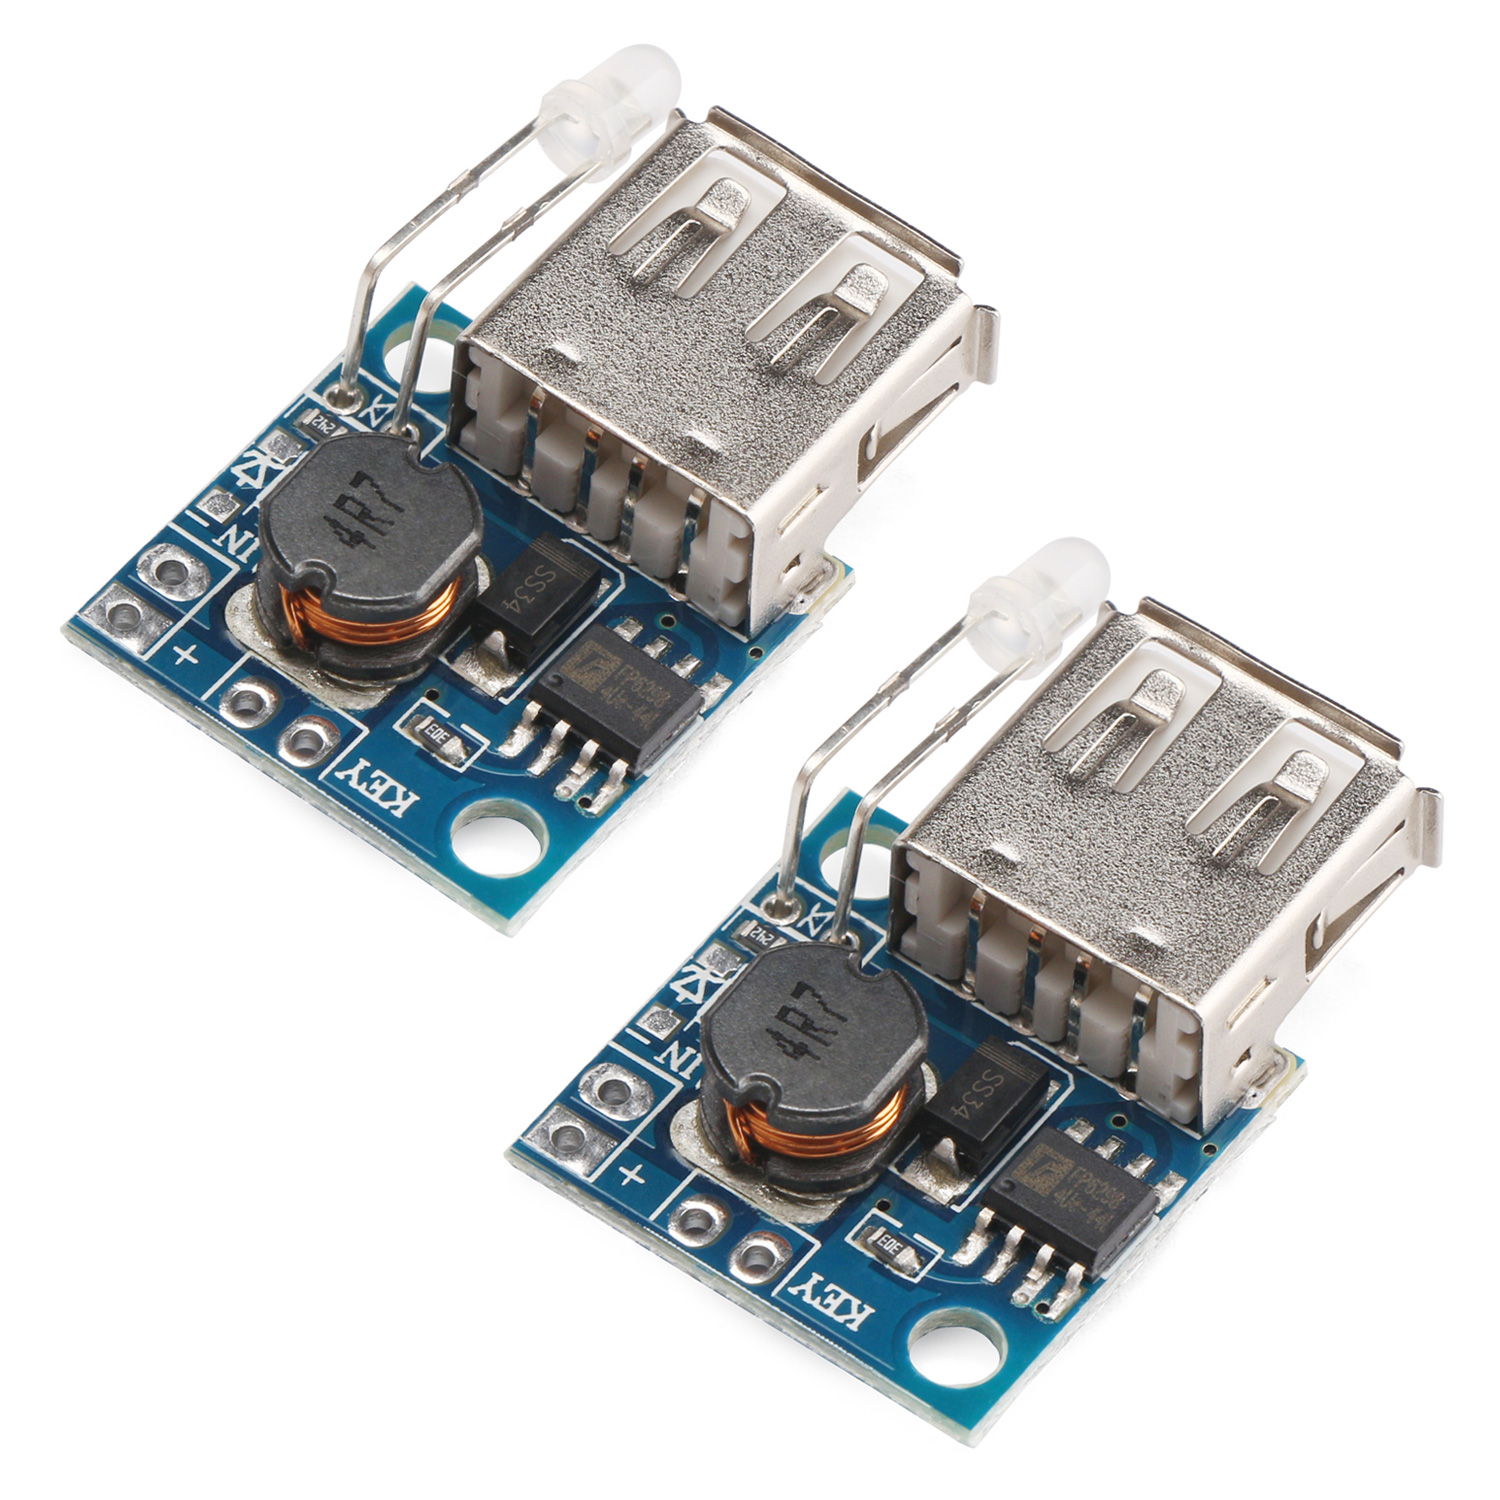 hight resolution of usb mobile power supply board 2pcs mini dc dc step up converter 3v to 5v 2a